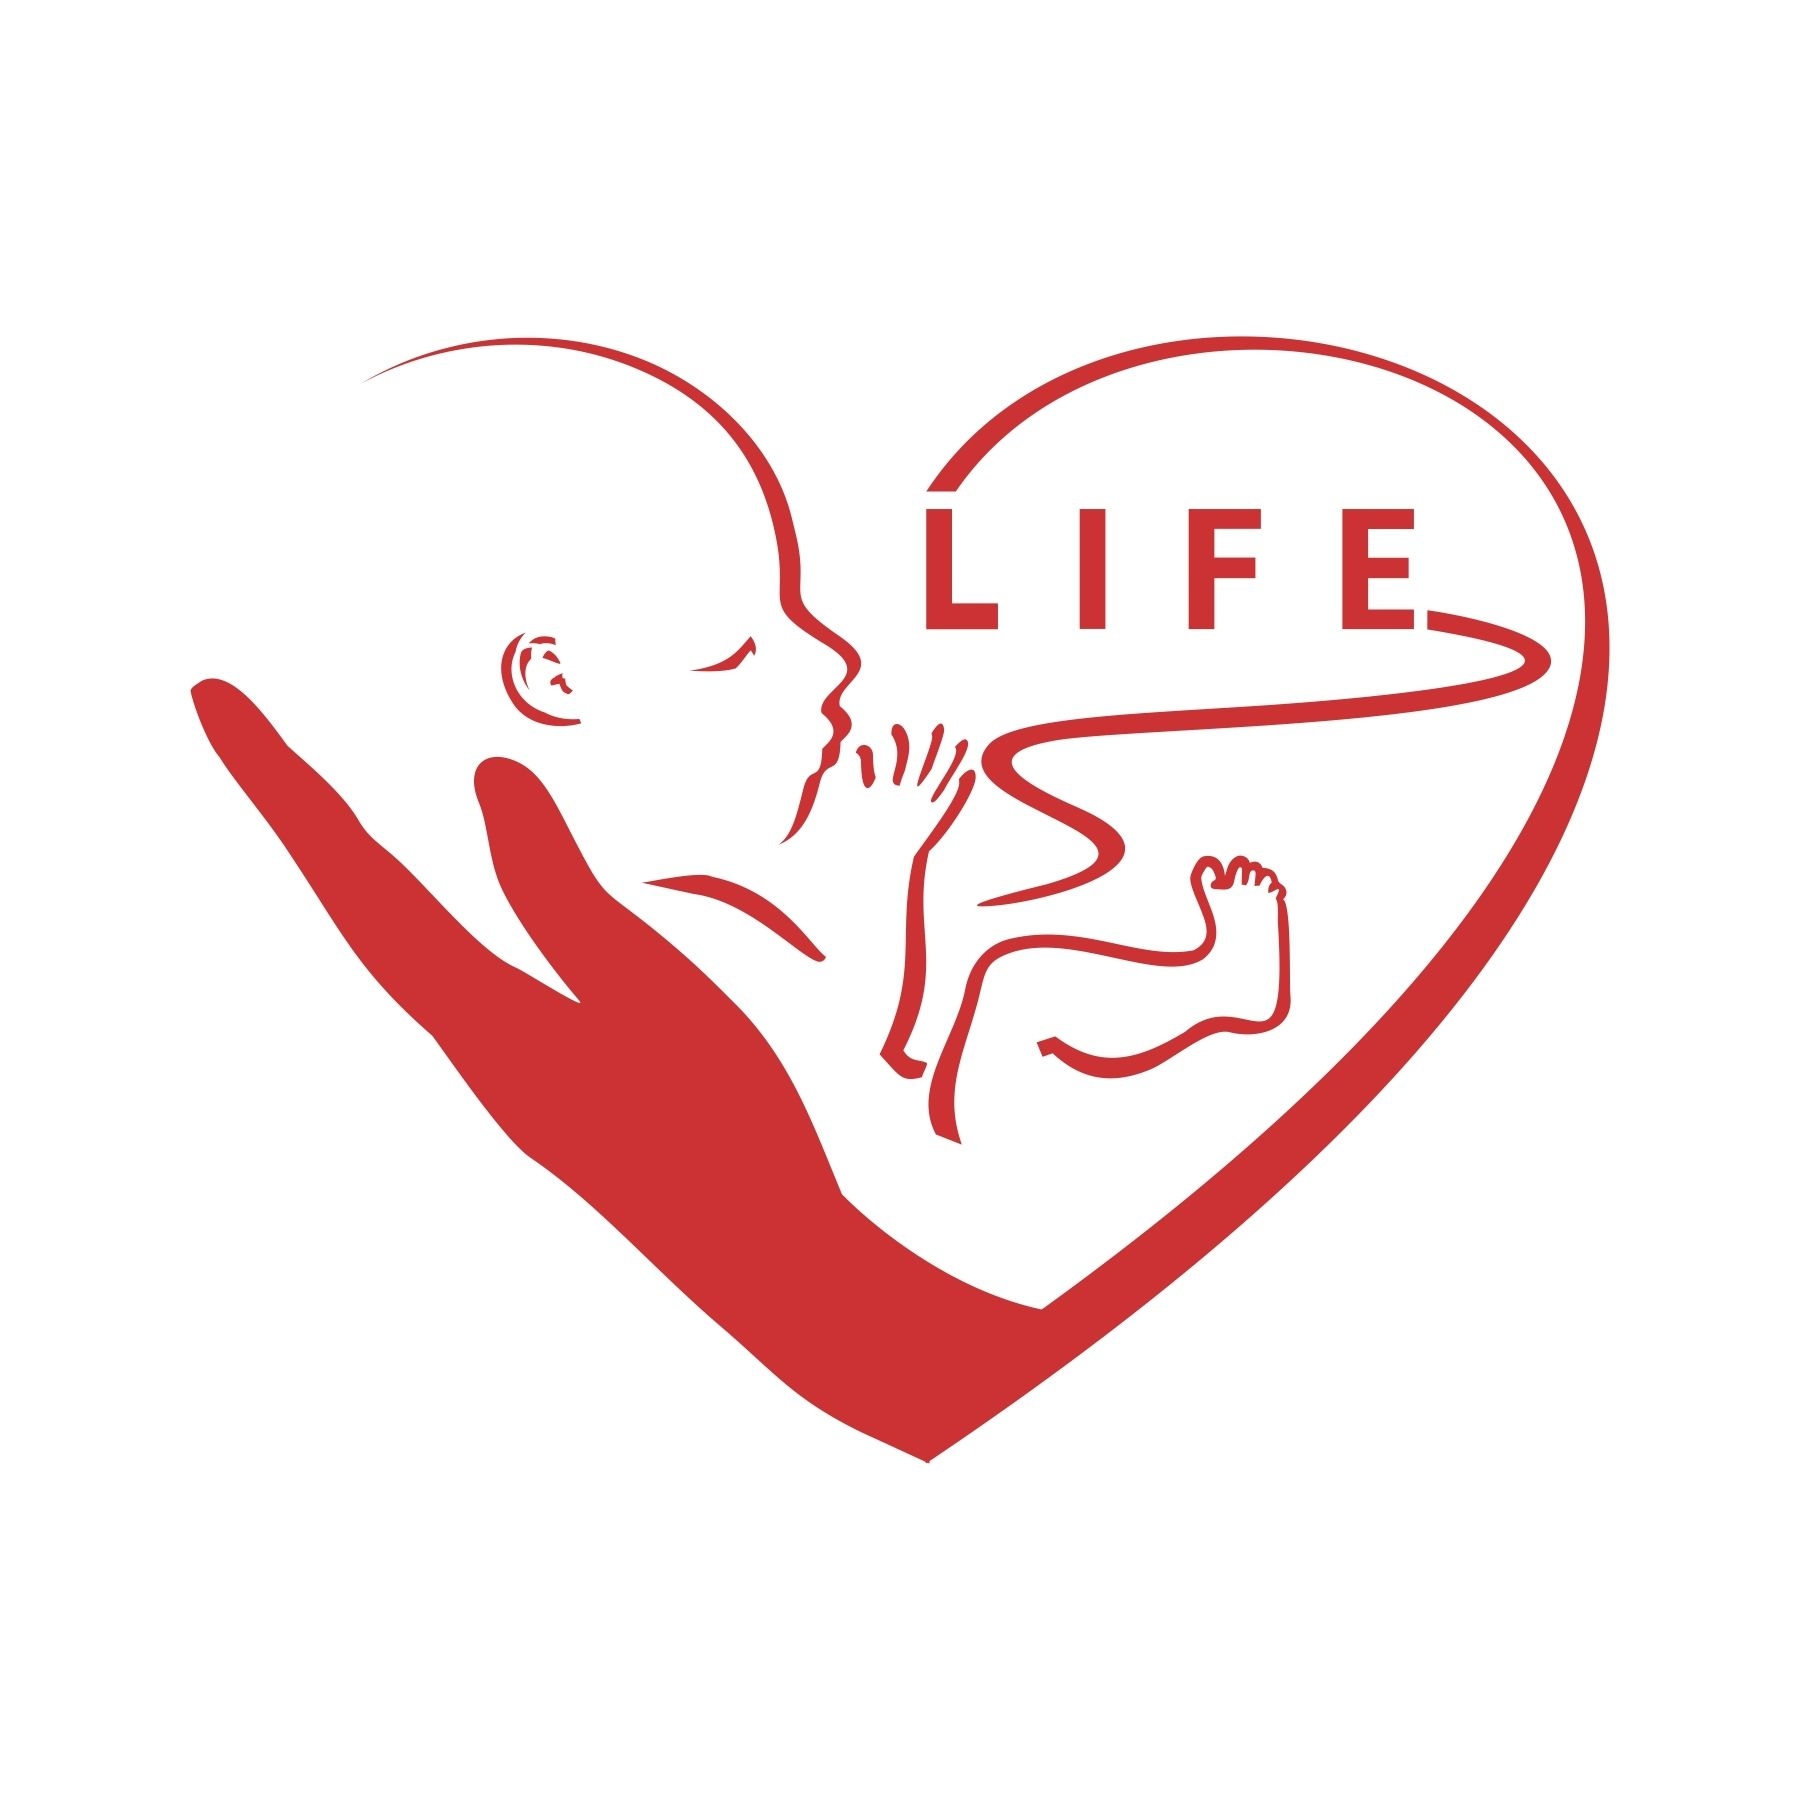 pro life abortion is illegal A coalition of pro-life groups challenging the law say it explicitly targets and  coerces religious counseling centers into pro-abortion expression.